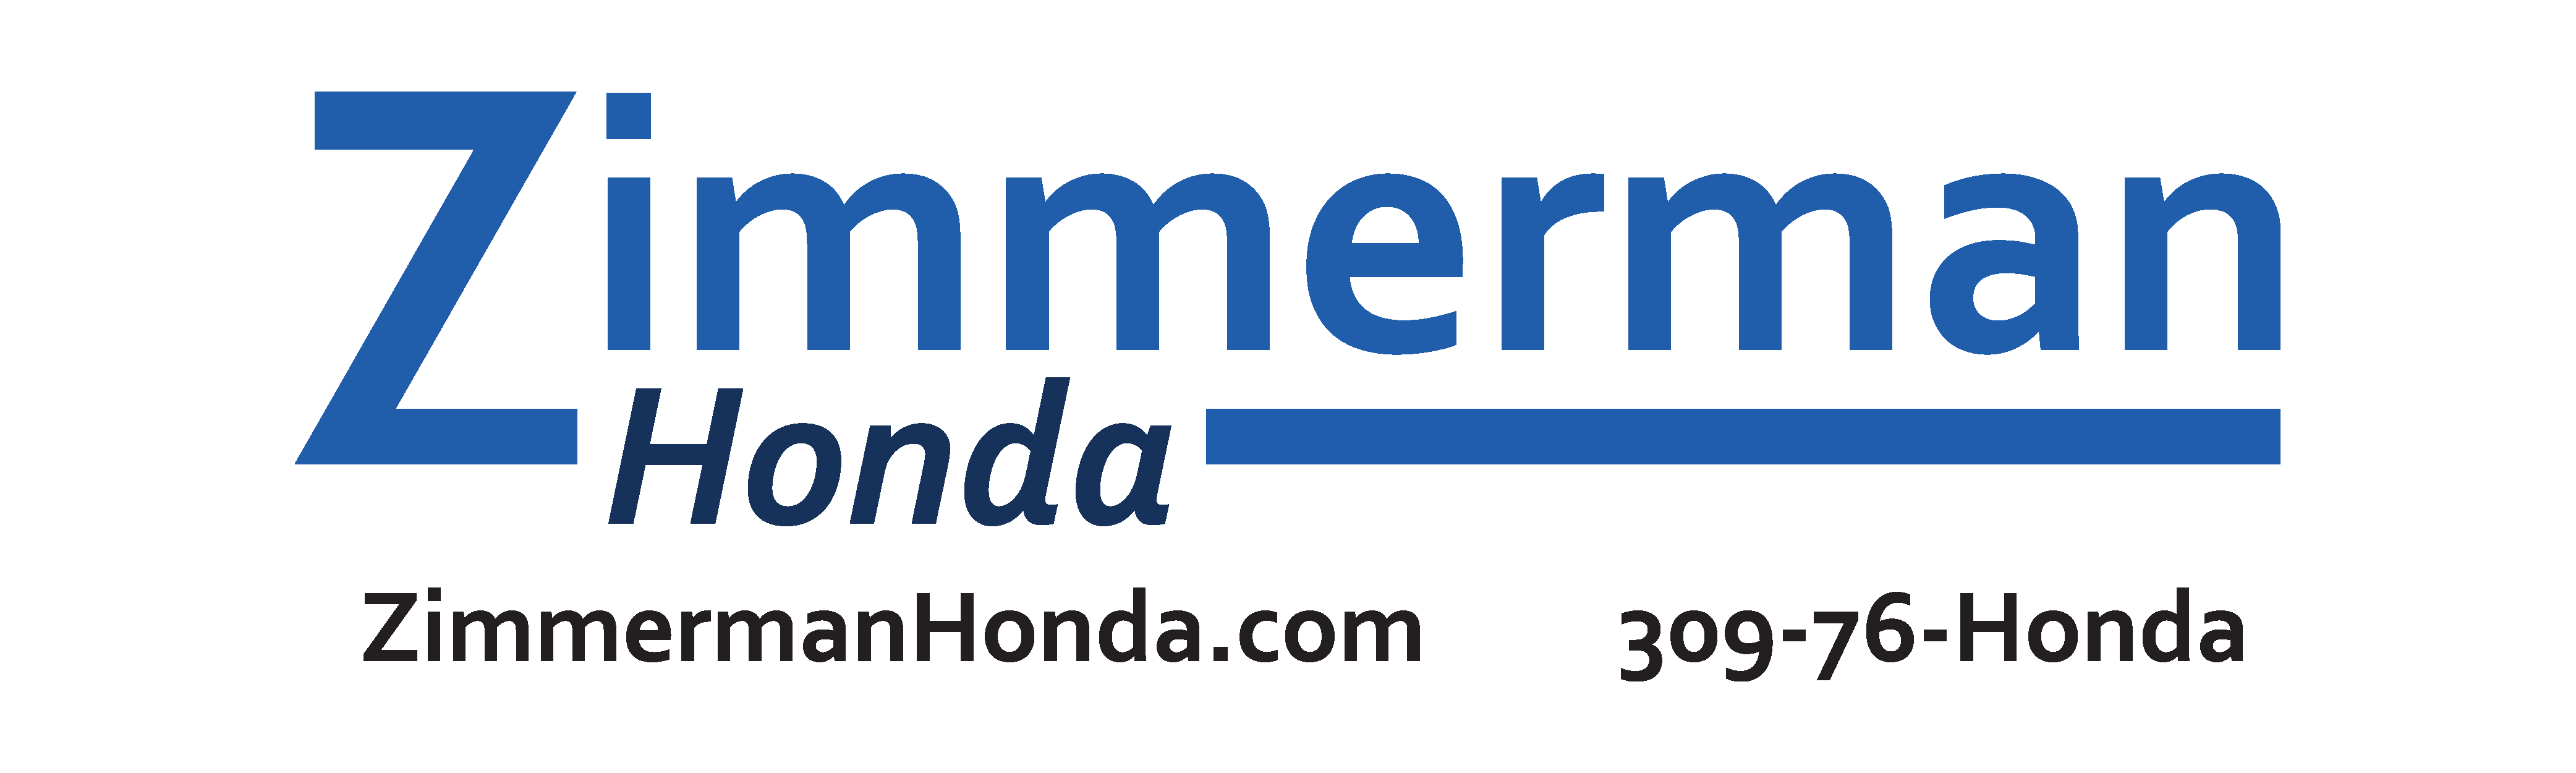 Z honda logo blue website phone